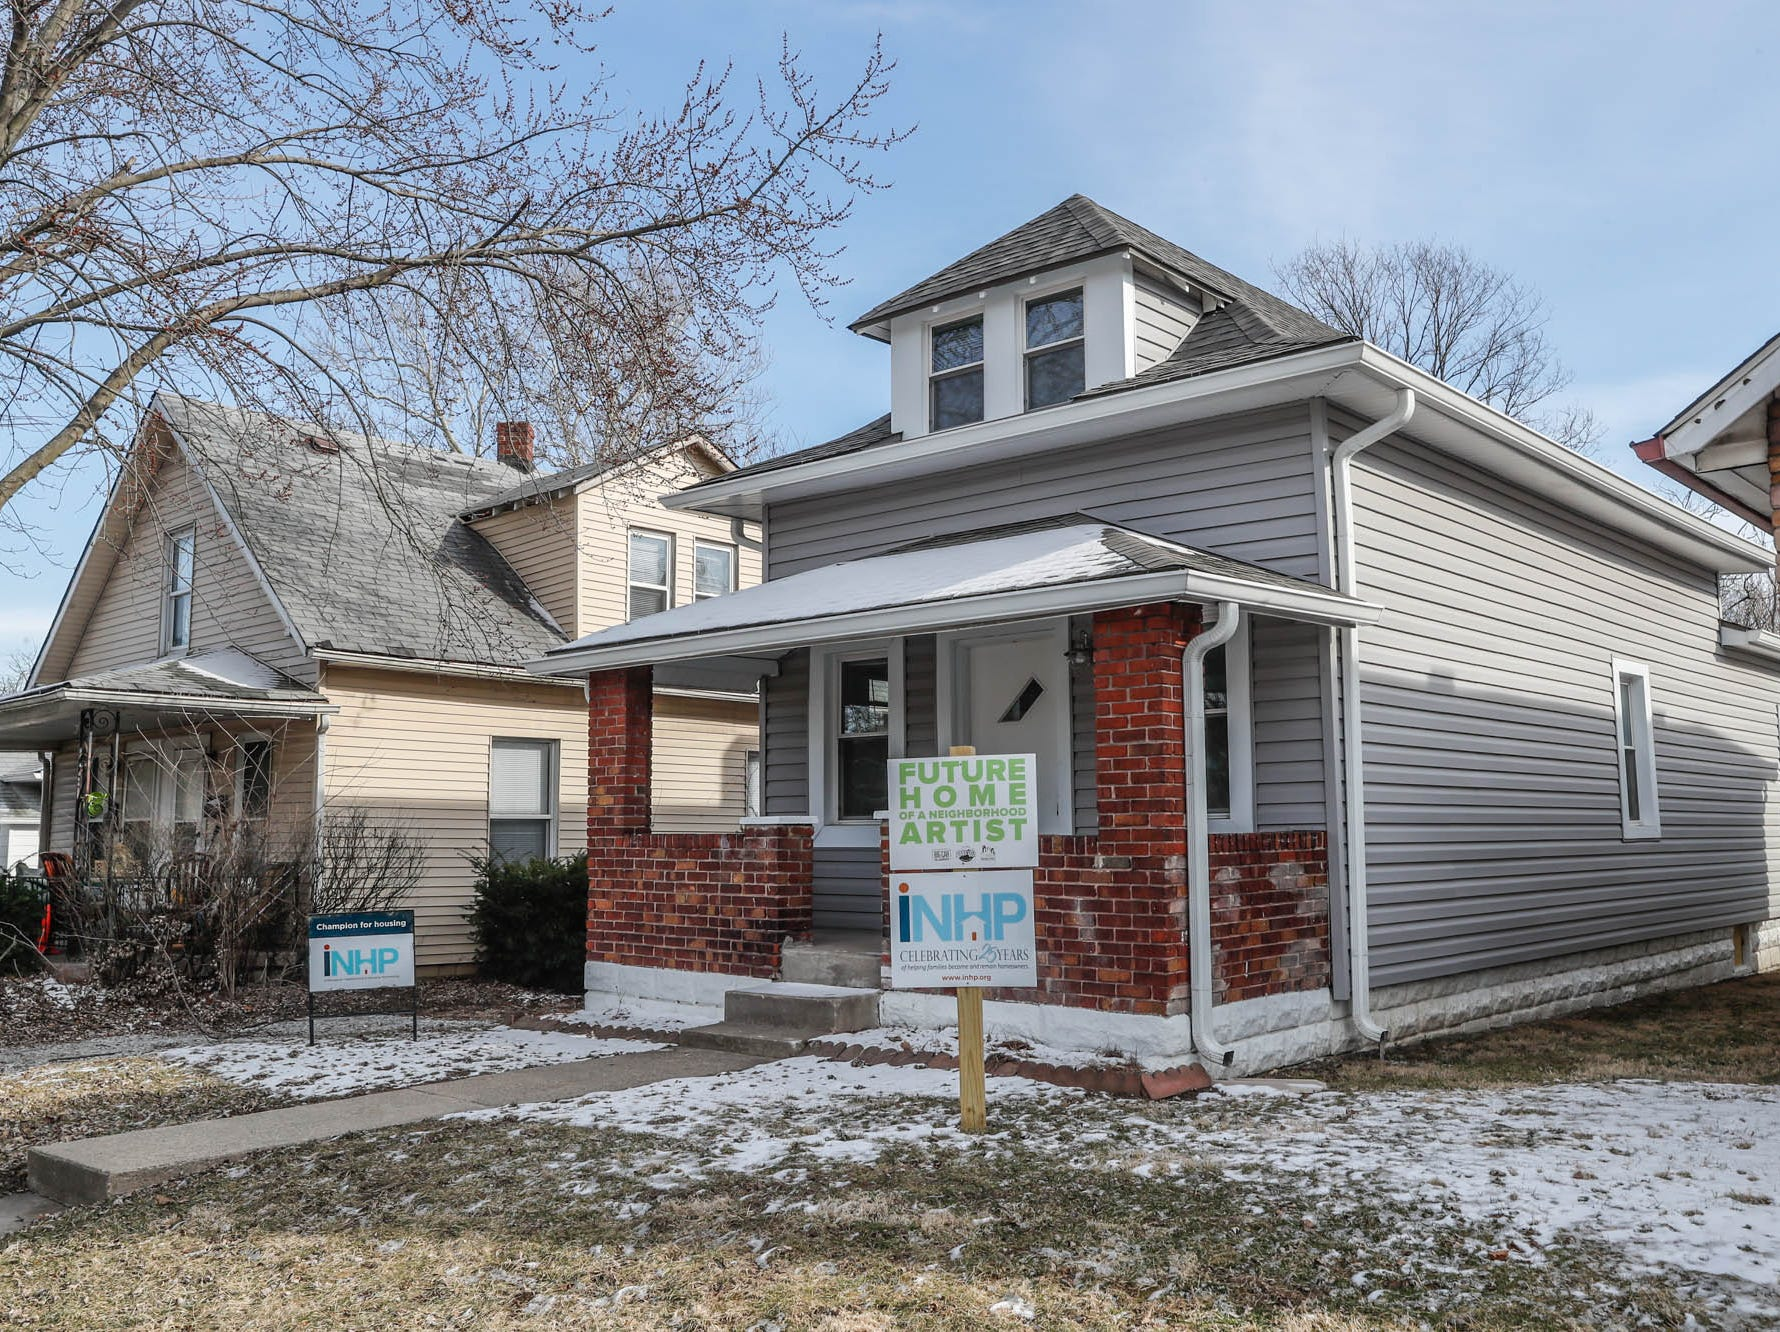 A newly remodeled home on Cruft St., affectionally known as the 'fish tank house' because the living room once featured an in-wall fish tank, is part of the Big Car Collaborative and Riley Area Development affordable artist home ownership program on the near south side of Indianapolis on Wednesday, March 6, 2019.  The goal of the Artist and Public Life Residency (APLR), will be to provide artists with home ownership while they work and collaborate with the greater community.